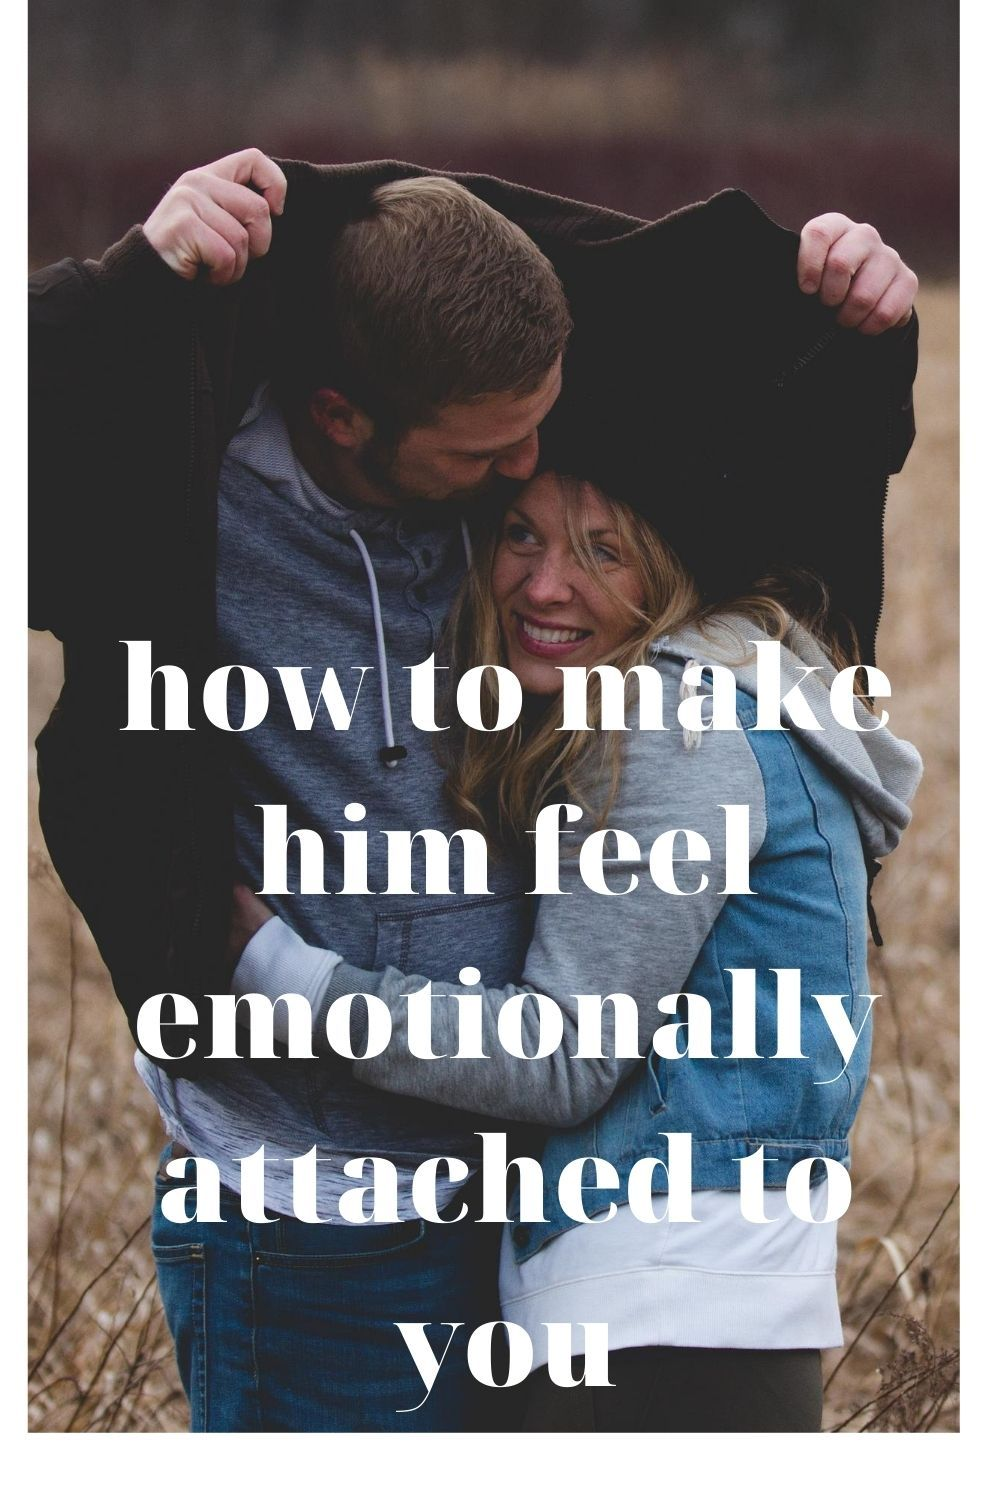 c9897658412550237a4840c6a95a2ea3 - How To Get A Man Emotionally Attached To You